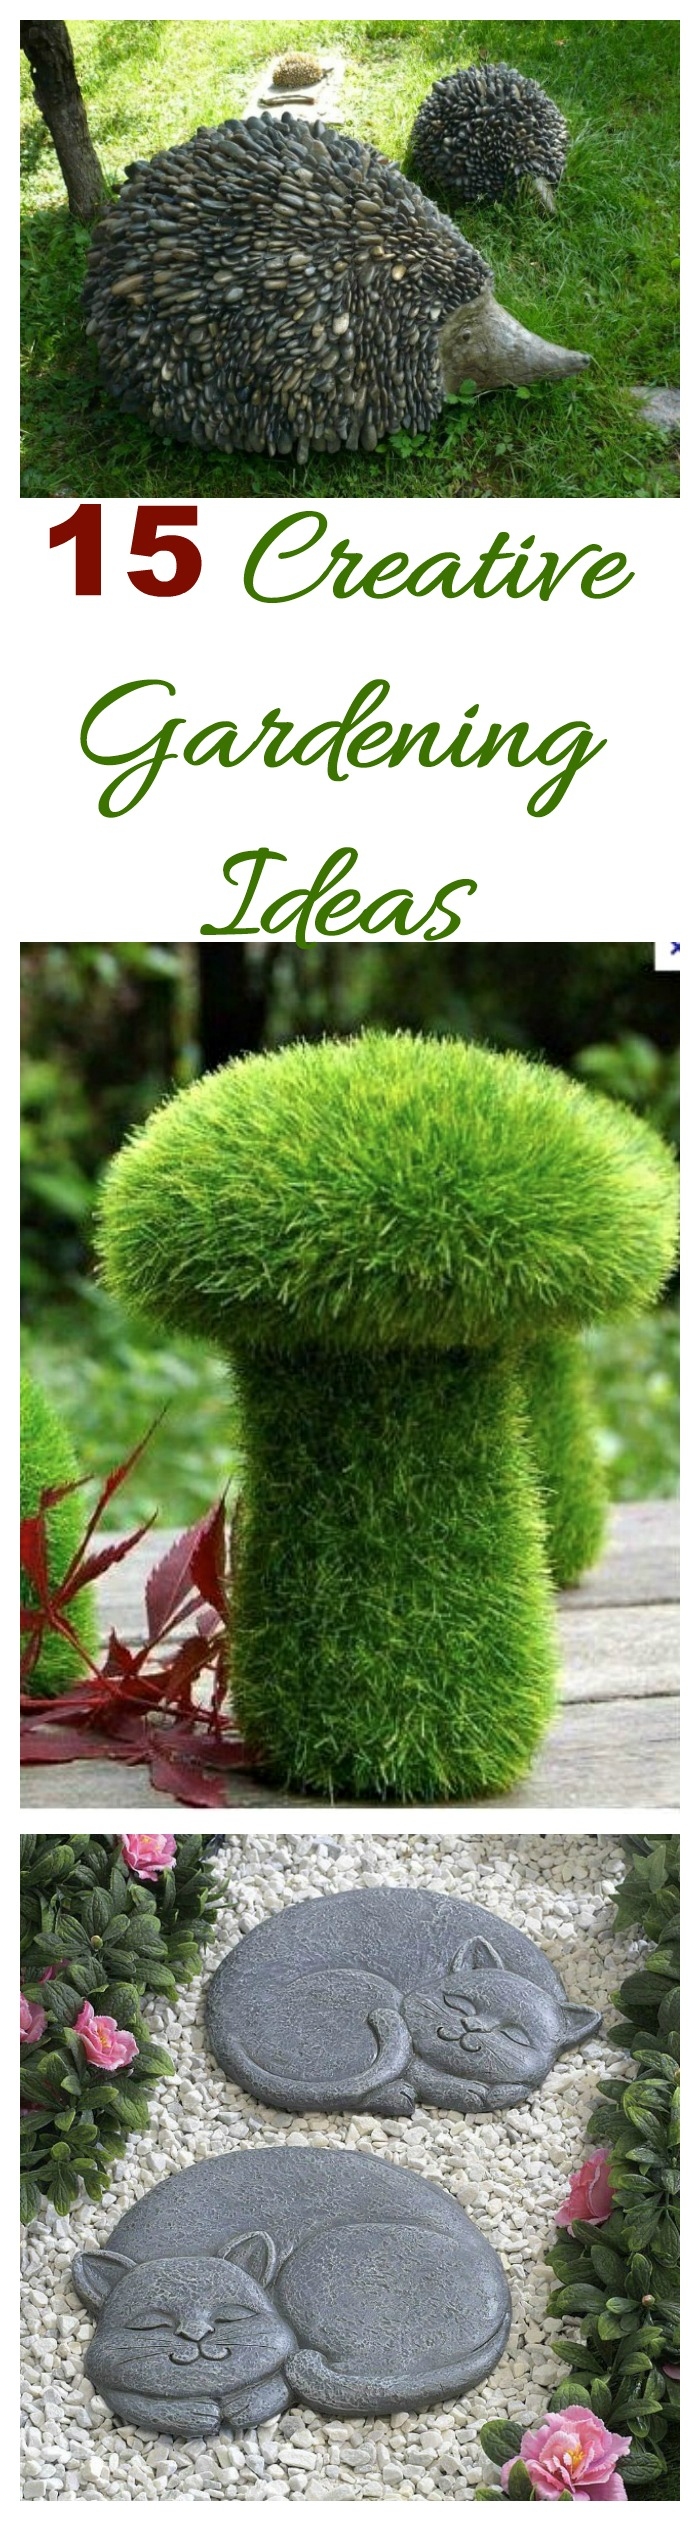 Gardening ideas creative projects and decor the for Creative garden design 805